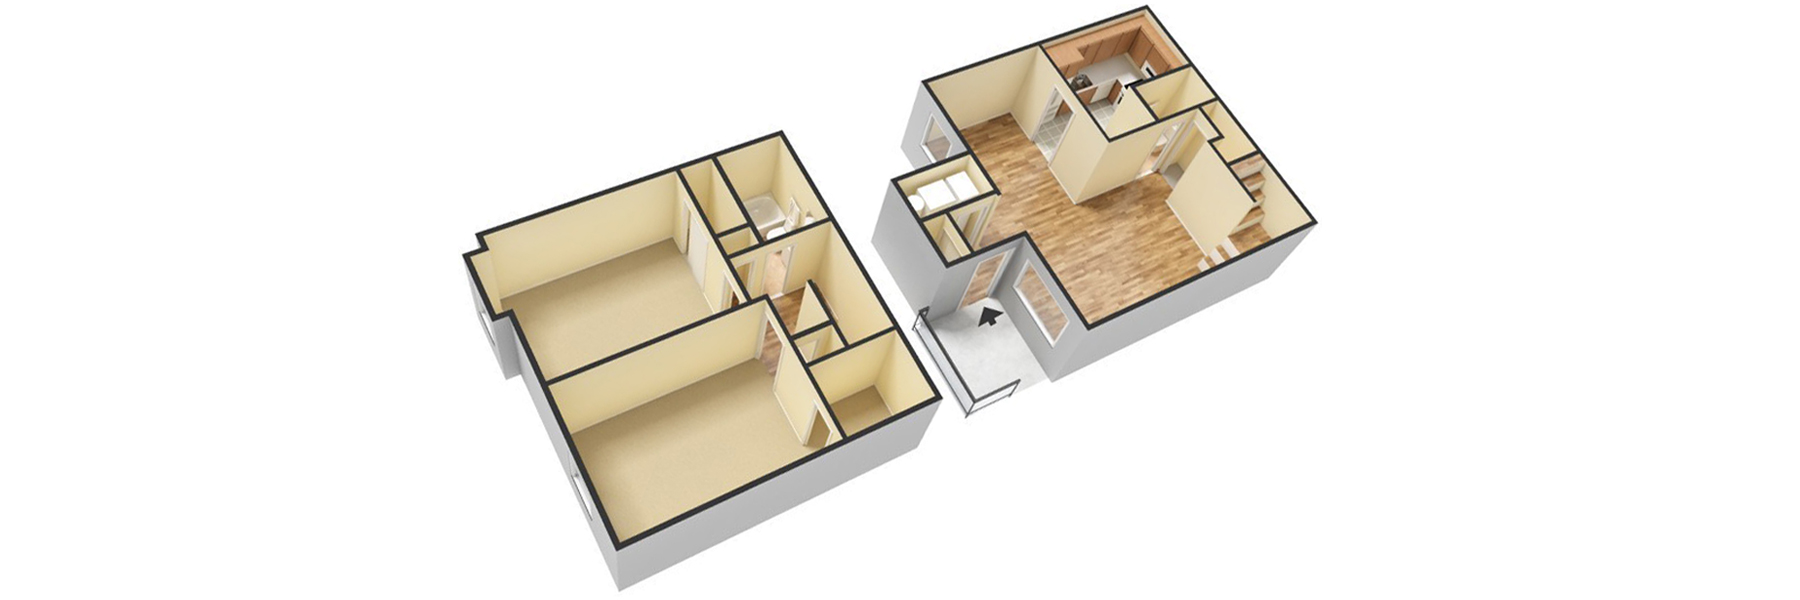 09 FoxMeadow 2bedTownhouse 1.5bath unfurnished apartments for rent in maple shade nj foxmeadow com  at virtualis.co